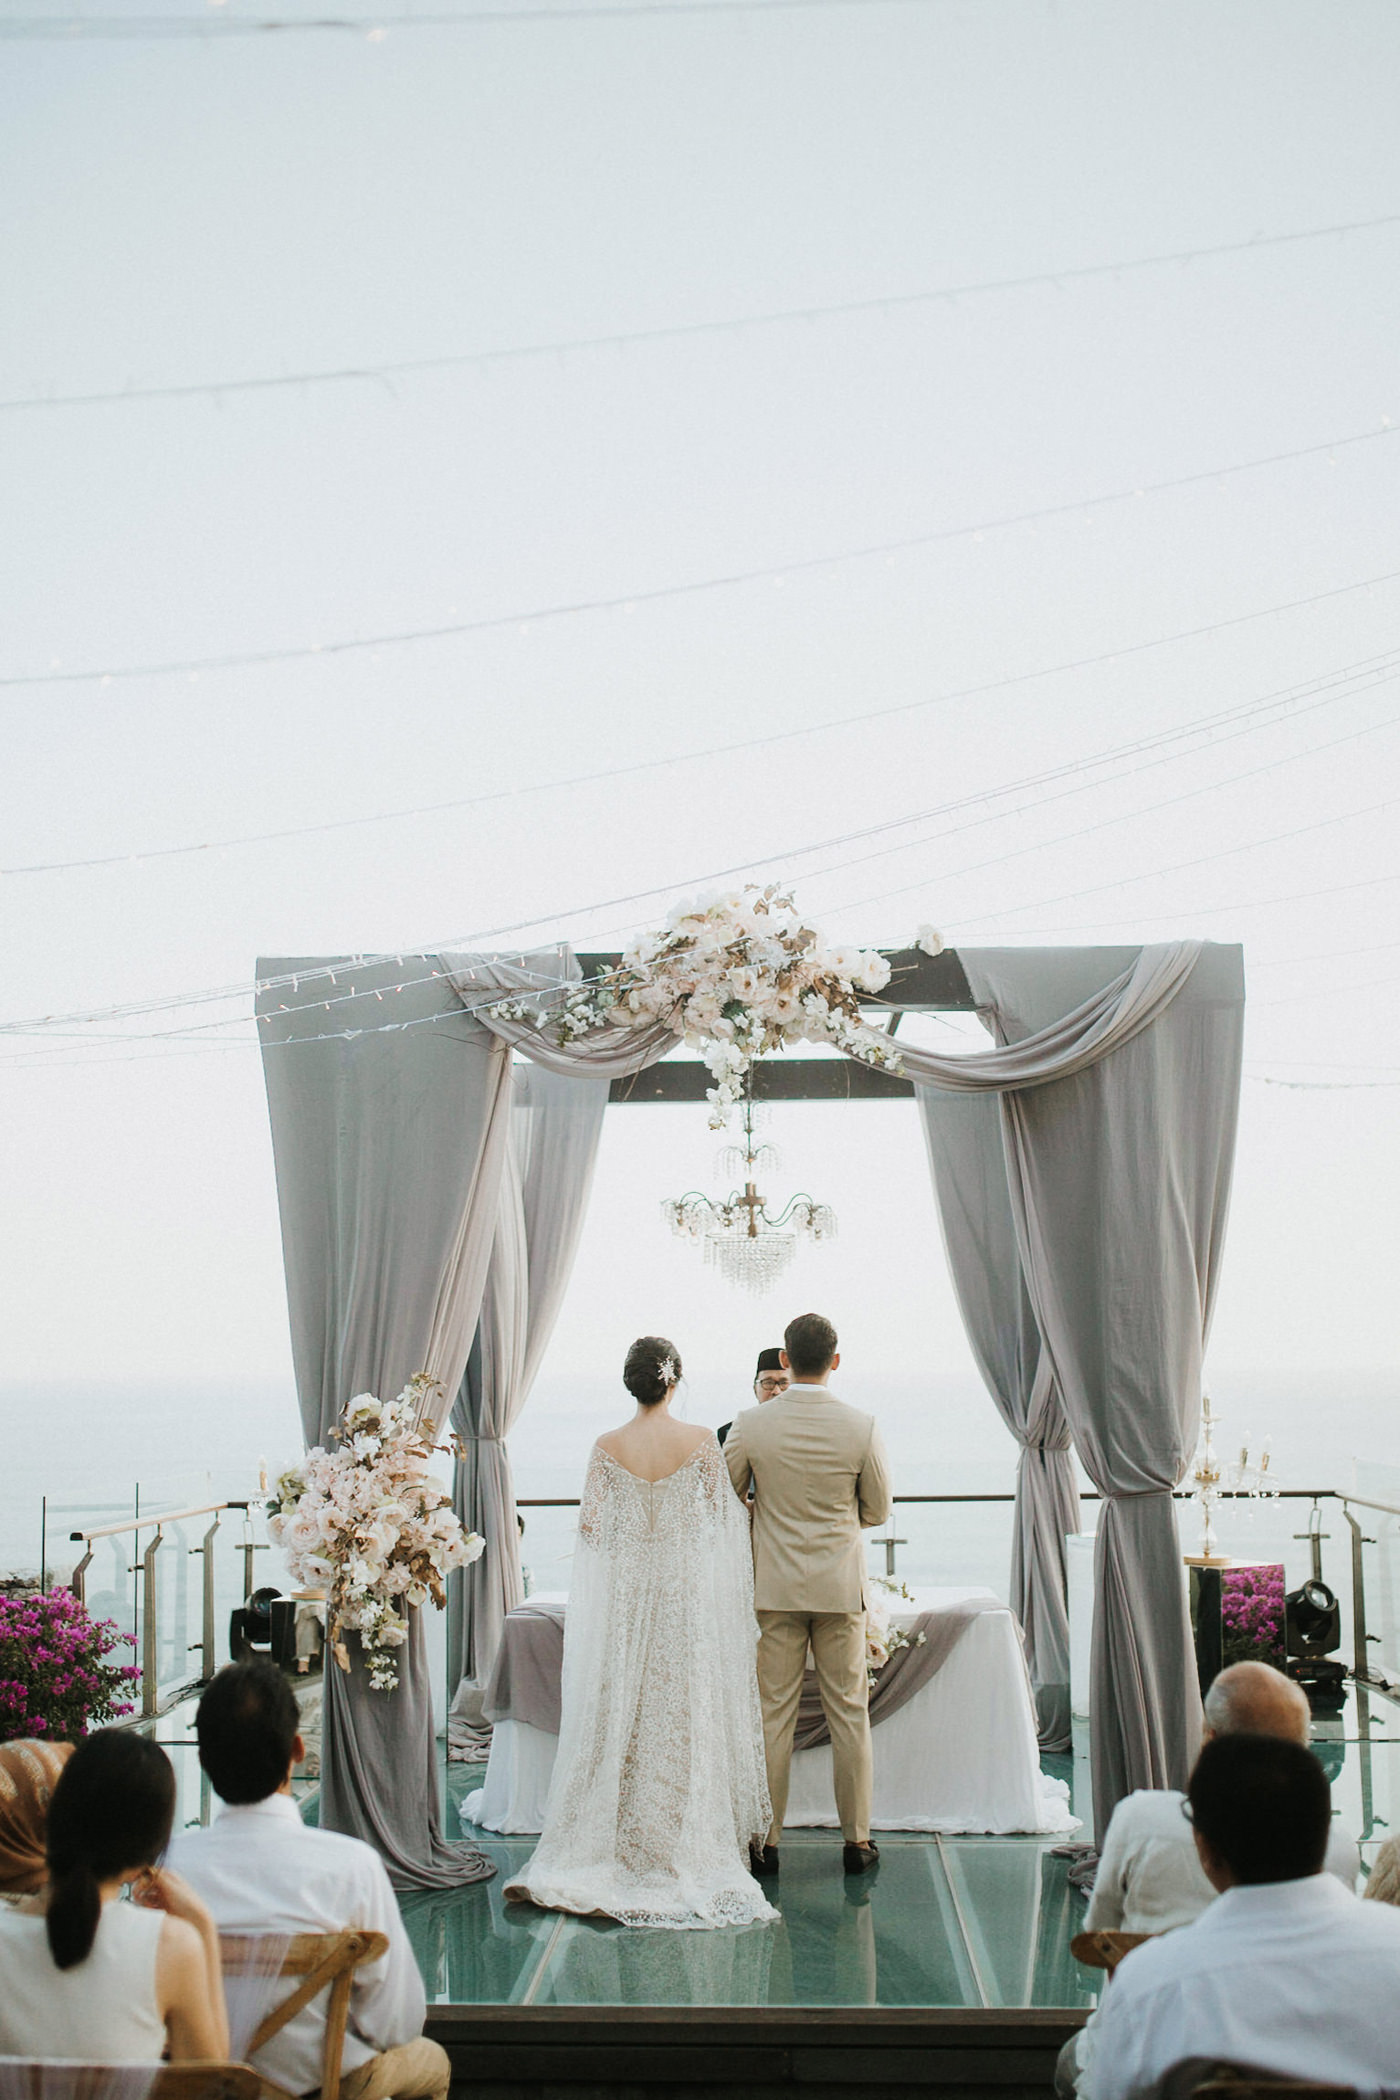 ana and adie wedding tirtha bridal bali uluwatu iluminen destination photographer intimate photography